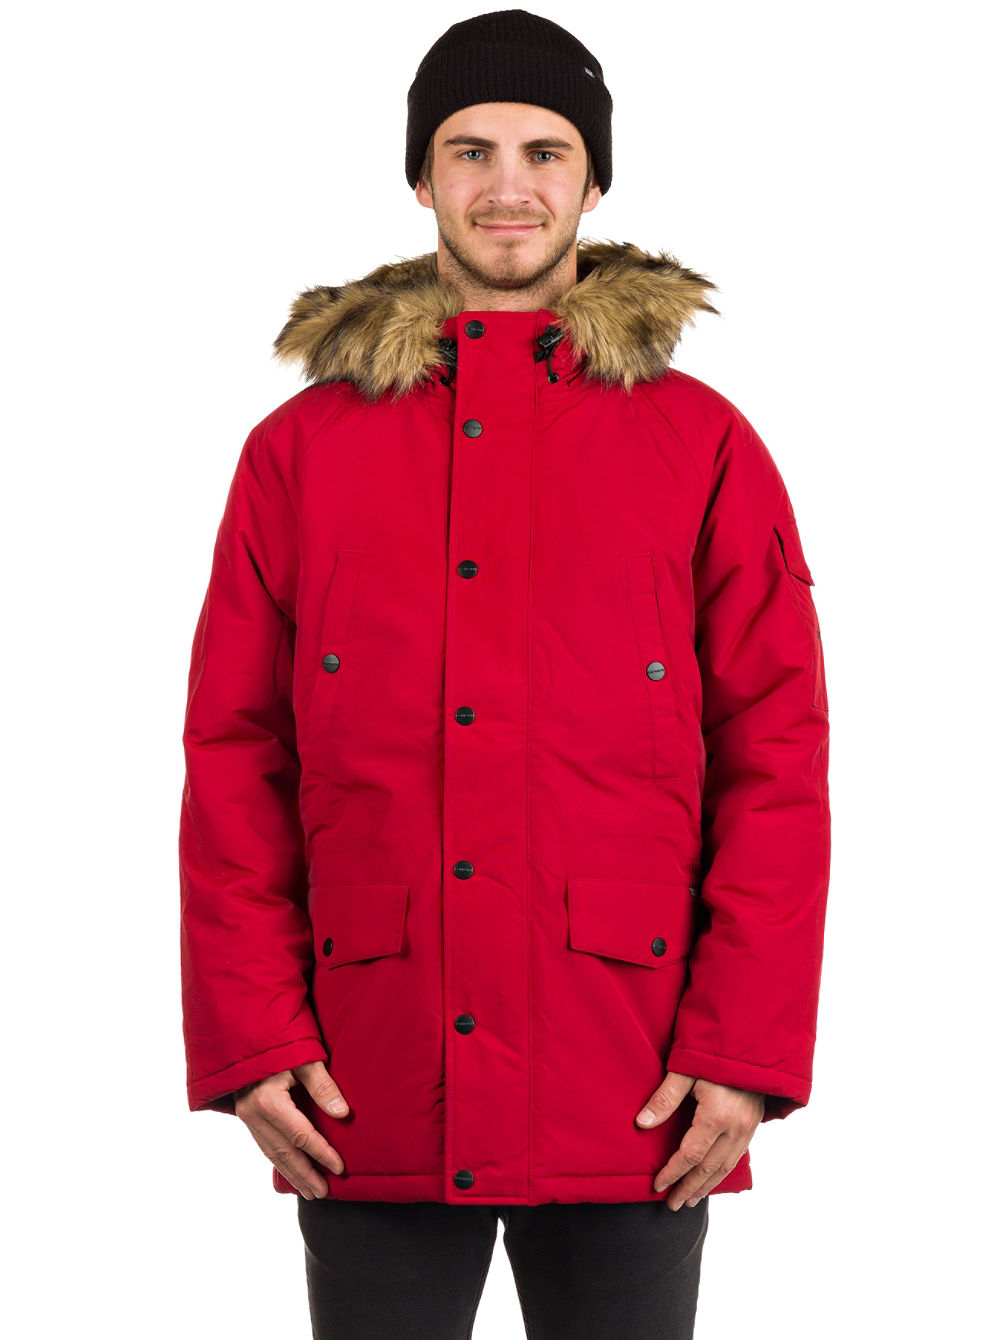 popular stores coupon codes release date: Anchorage Parka